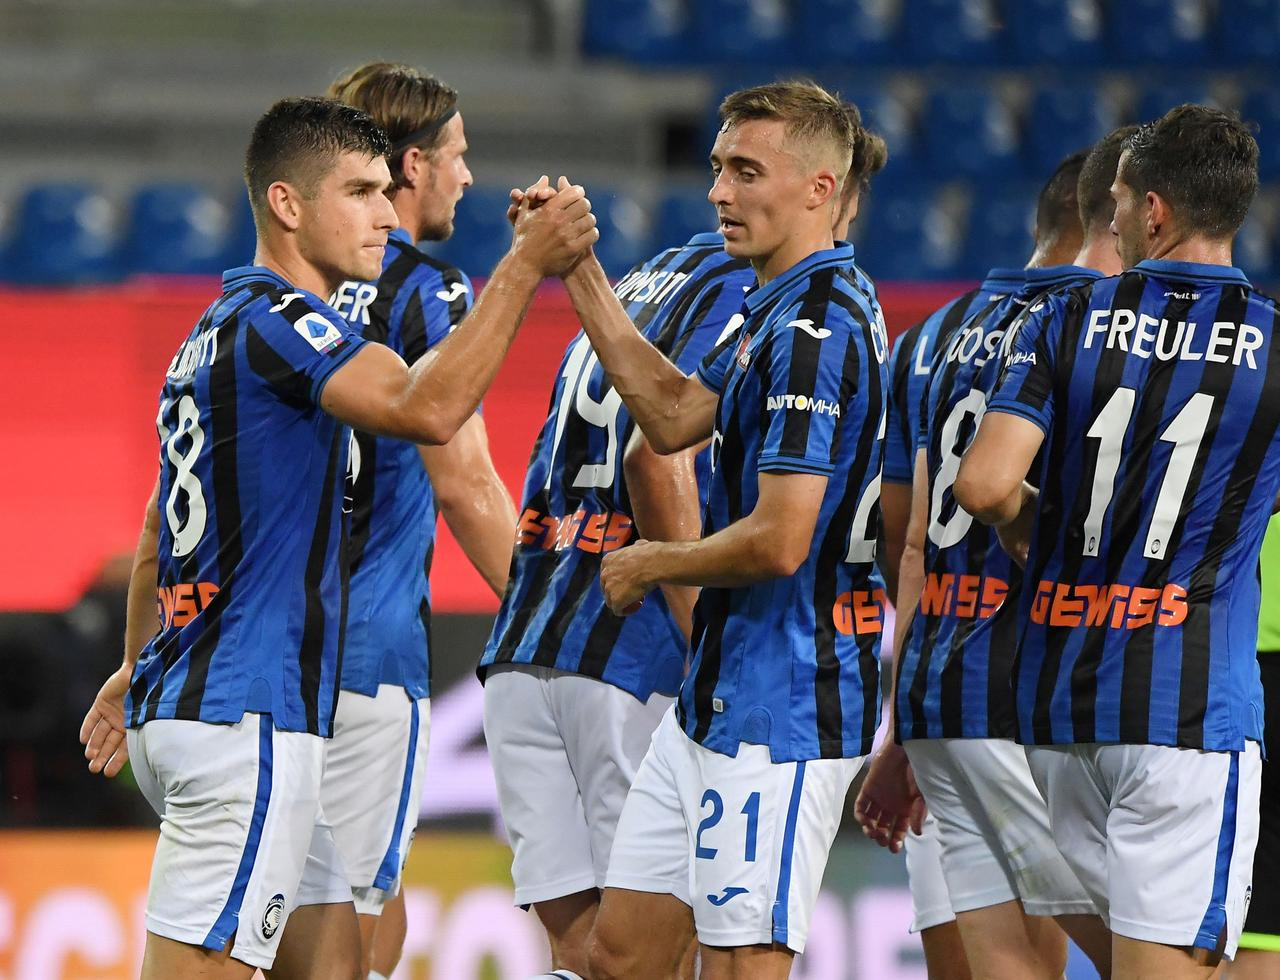 Atalanta close in on 100 goals with late win at Parma - Reuters